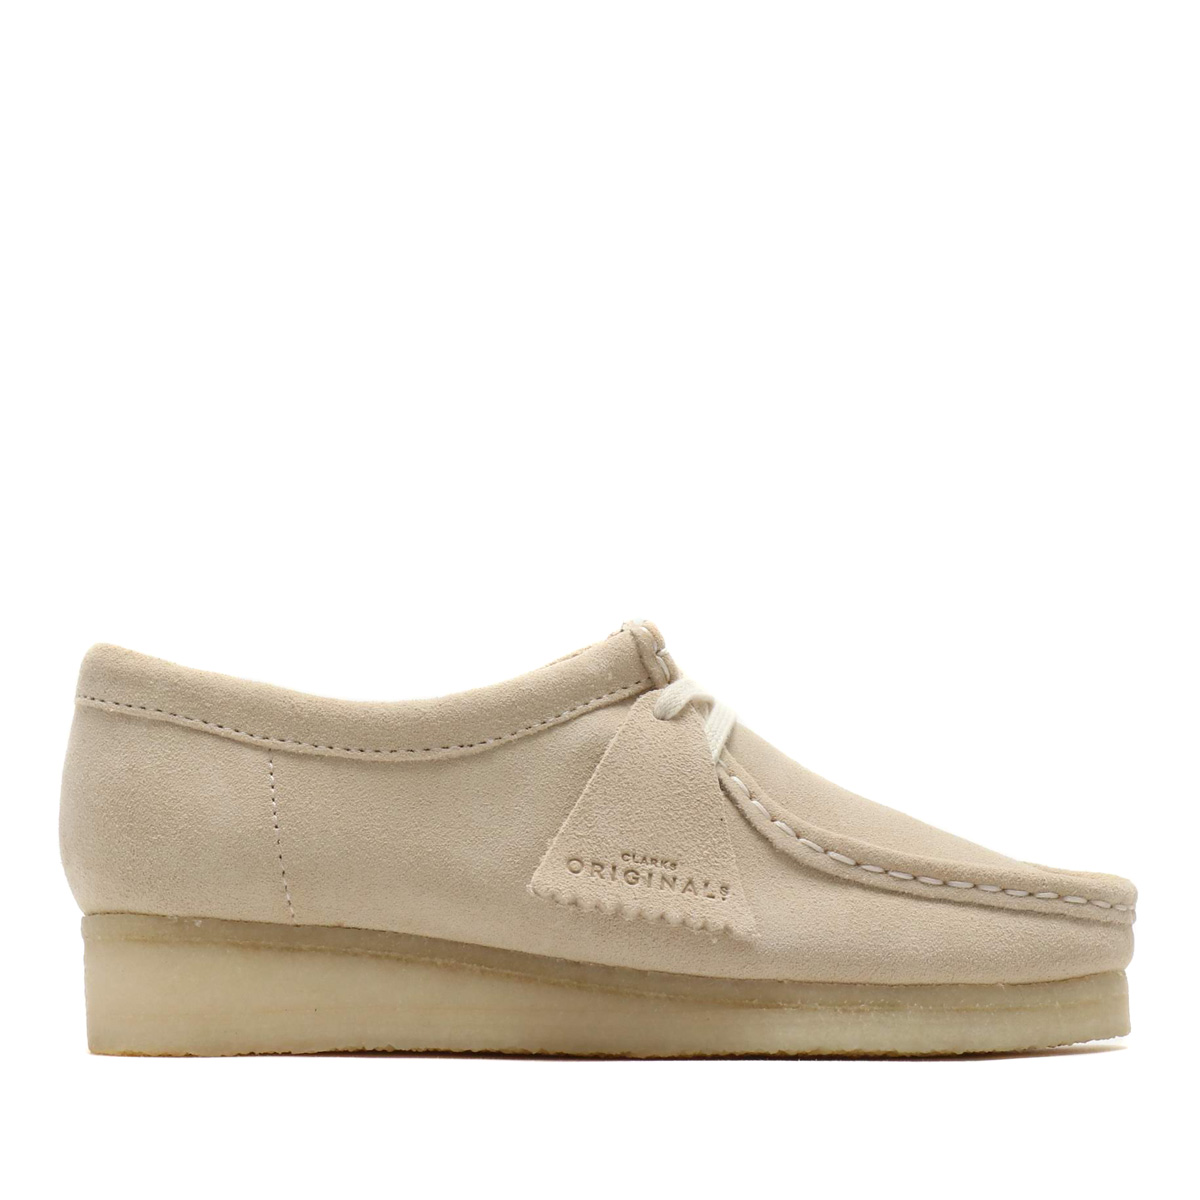 Clarks Wallabee(Off White Suede)(クラークス ワラビー)【レディース】【モカシン】【19SP-I】